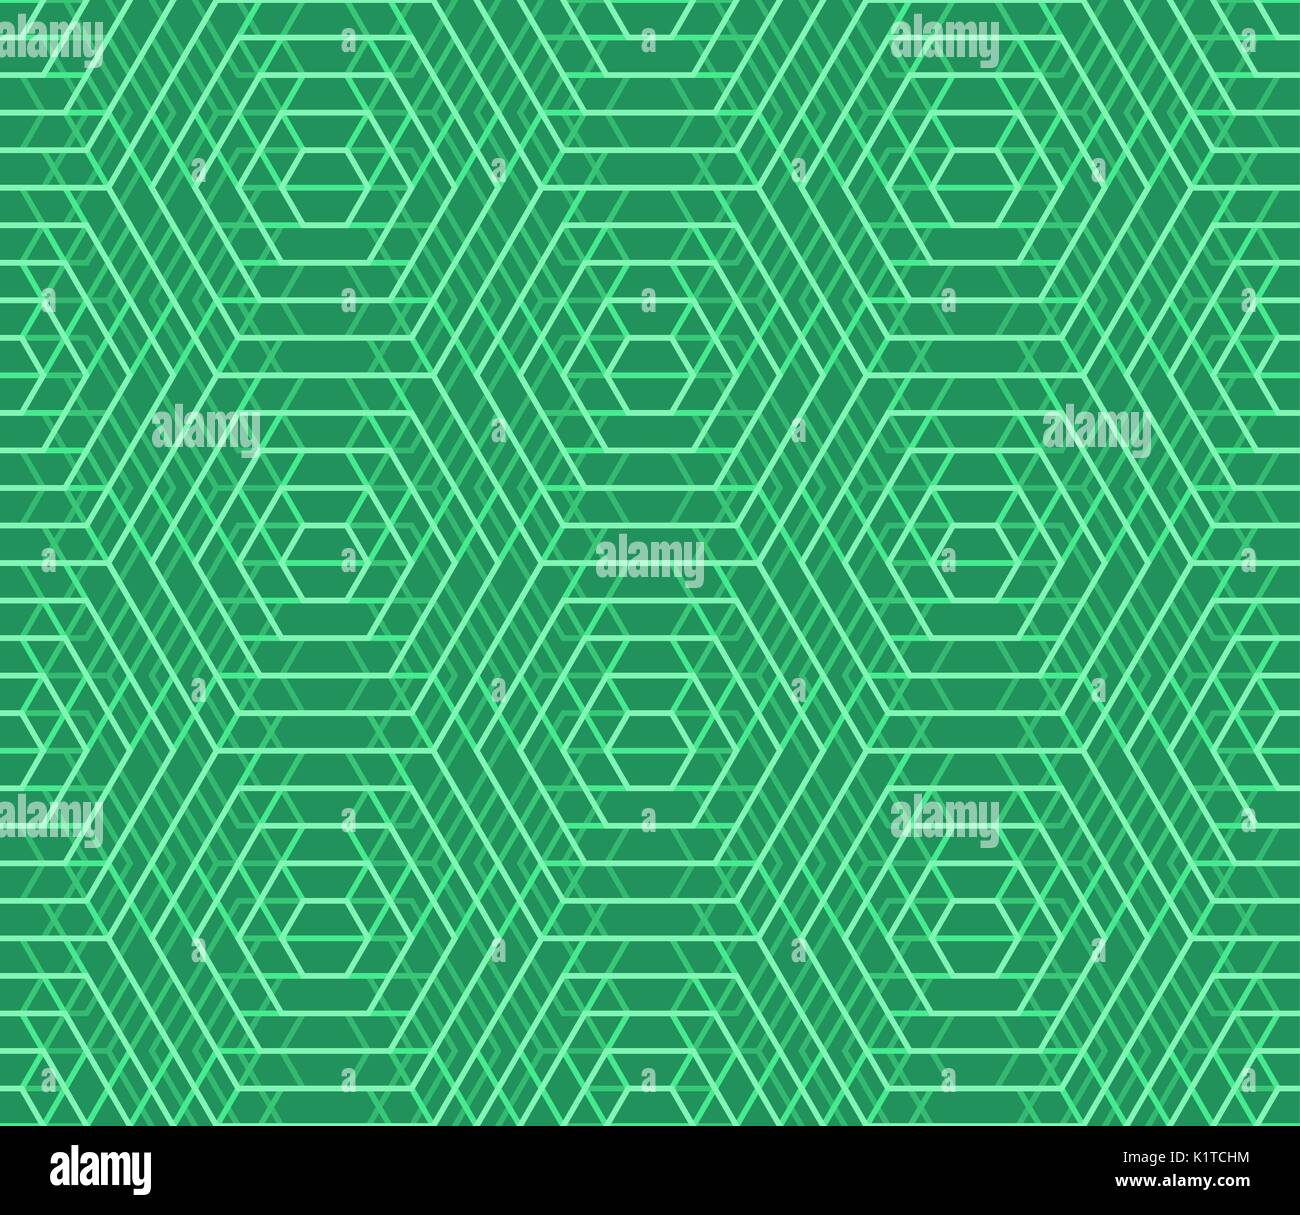 Wallpaper pattern blue green